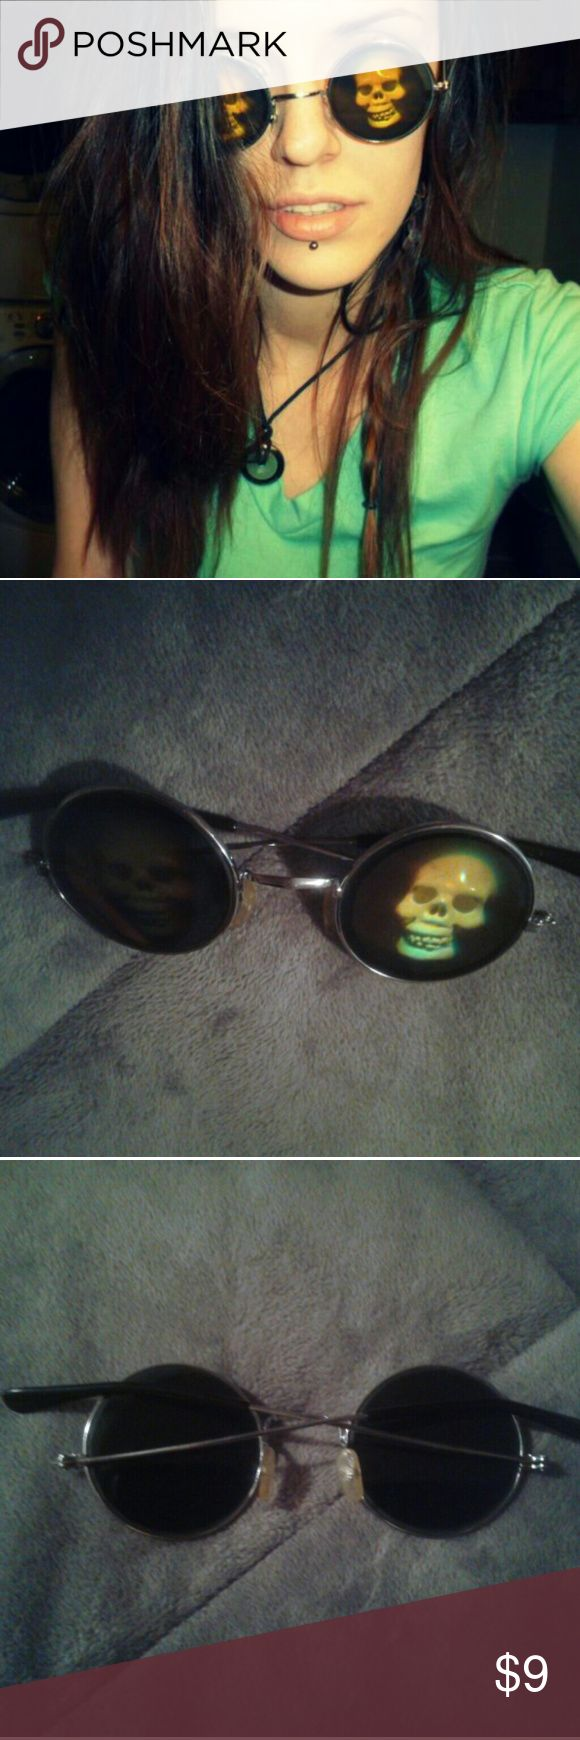 Skull SunGlasses These were given too me as a gift years ago. Didn't care for the way they looked on me. But are in need of a new home to truly appreciate them! **has some basic wear and tear from being older** otherwise perfect! (Listed under Hot topic for exposure.) Hot Topic Accessories Sunglasses